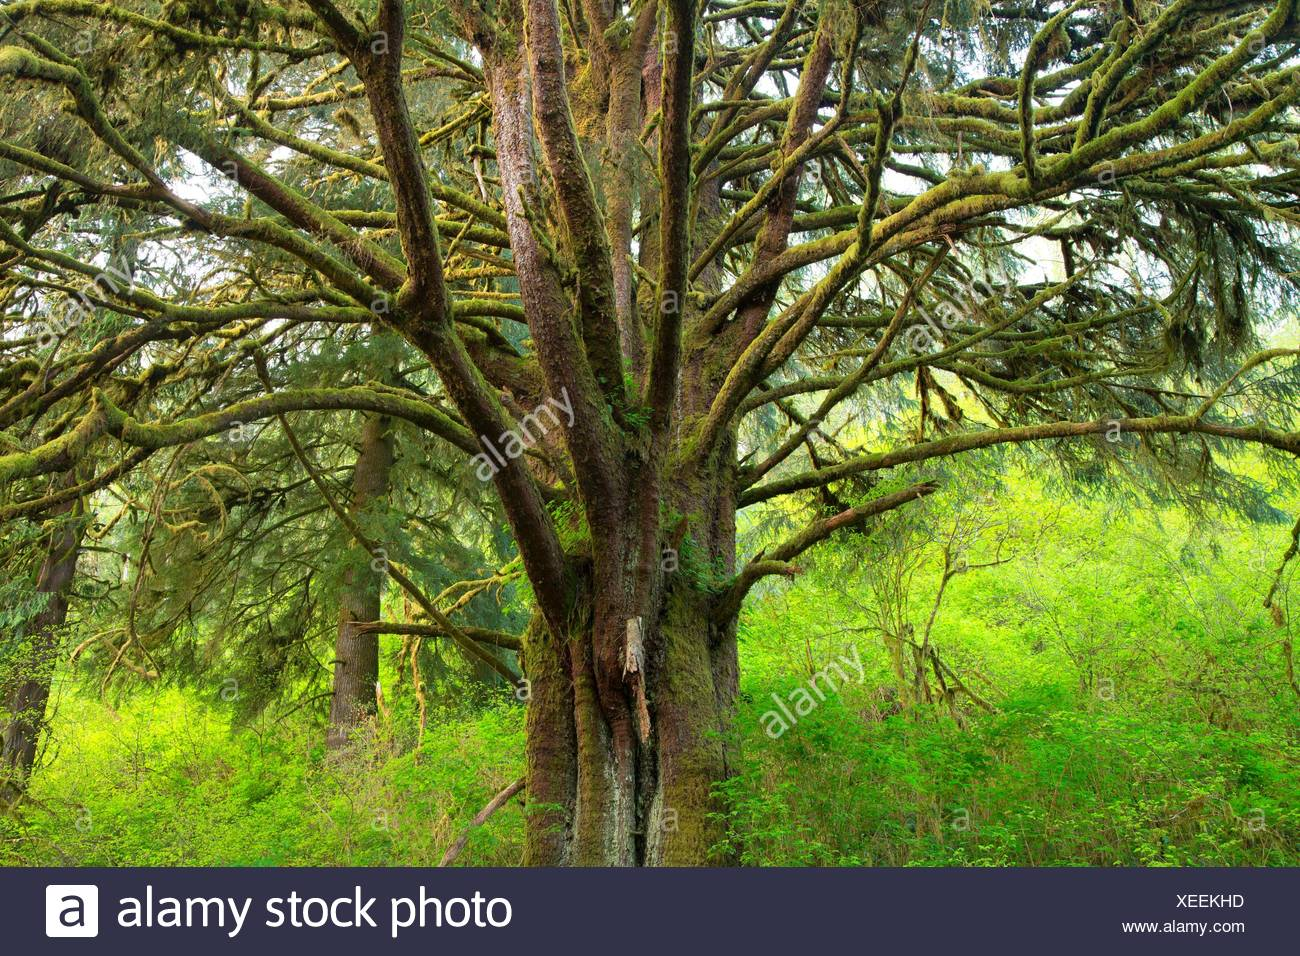 Sitka spruce (Picea sitchensis), Lincoln County, Oregon. Stock Photo